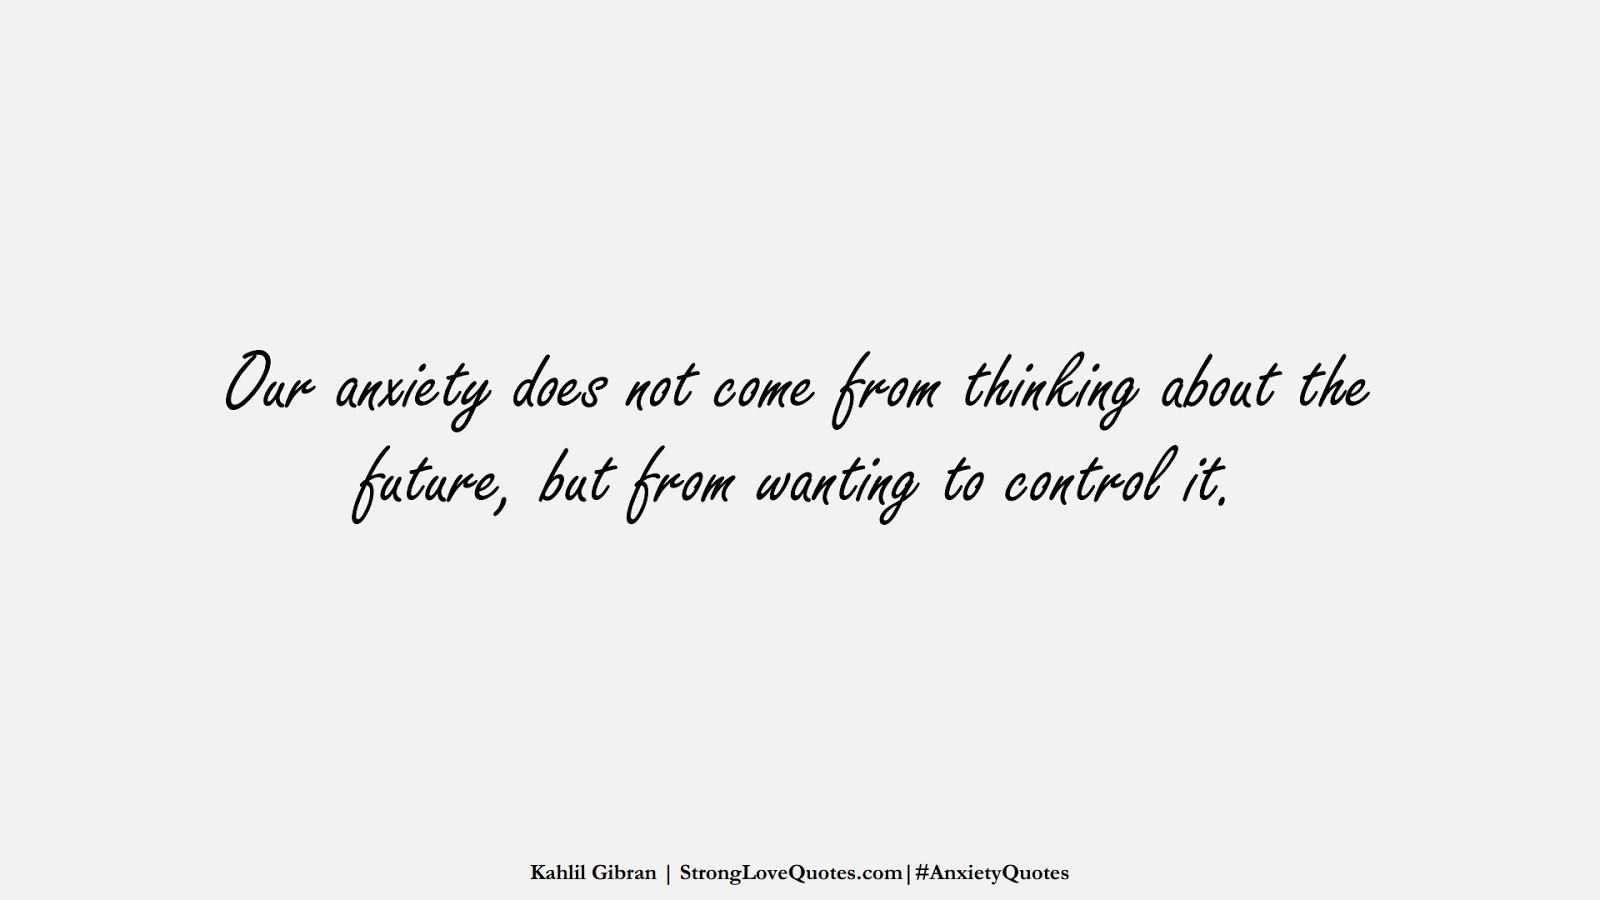 Our anxiety does not come from thinking about the future, but from wanting to control it. (Kahlil Gibran);  #AnxietyQuotes